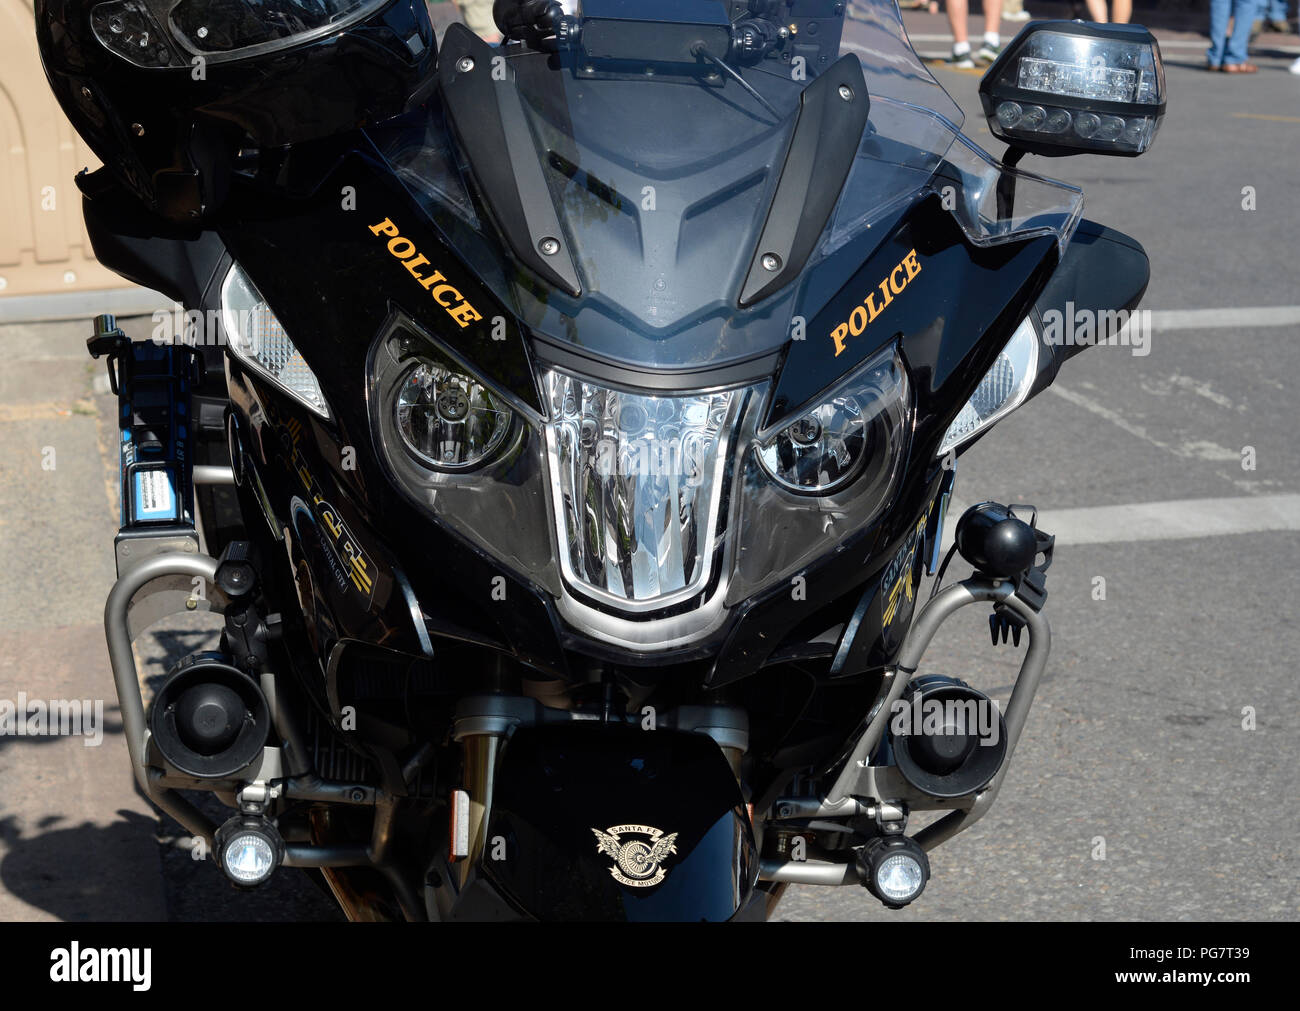 hight resolution of a bmw police motorcycle